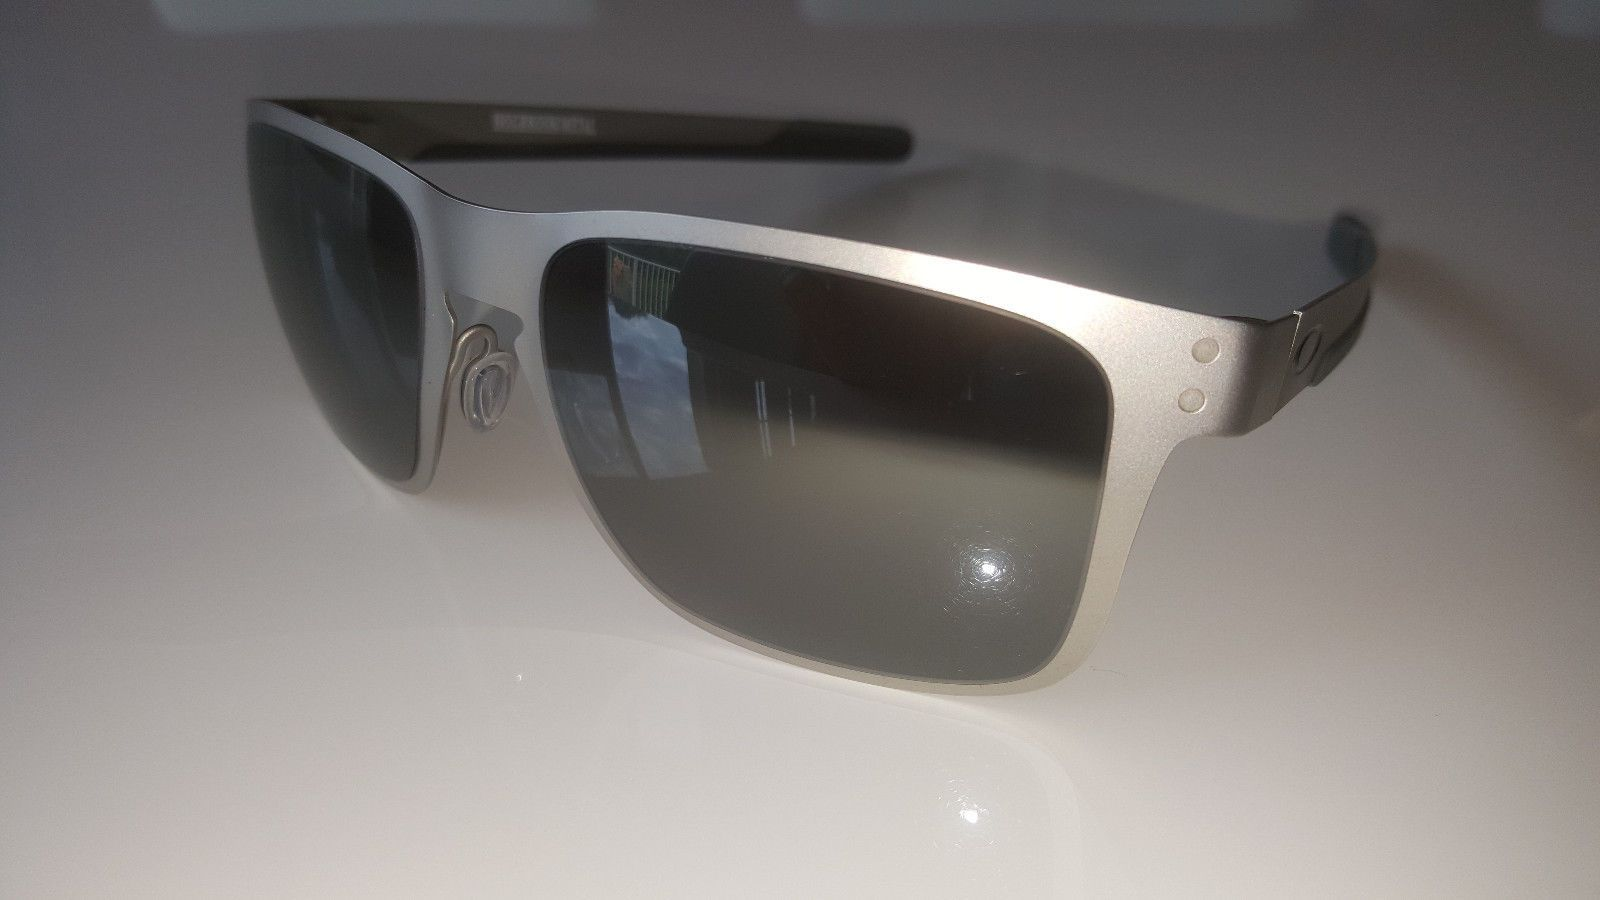 2afa9dd595c OAKLEY HOLBROOK METAL Sunglasses OO4123-03 55 Satin Chrome Black Lens NEW  IN BOX